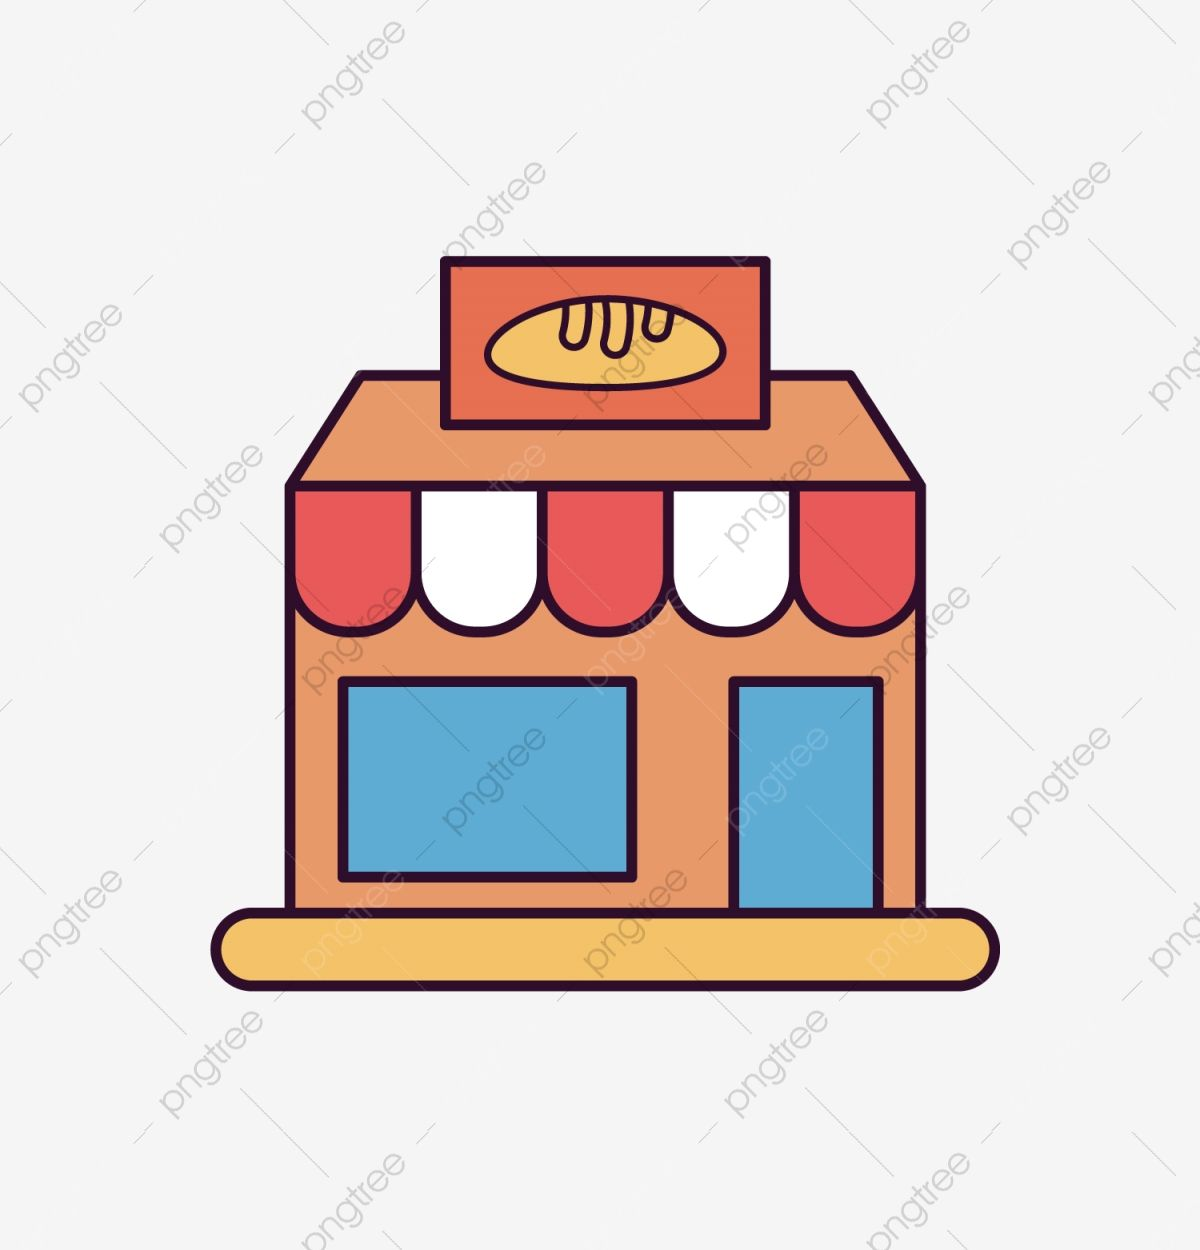 Bakery Vector Icon Material Bakery Icons Bakery Clipart Bakery Png And Vector With Transparent Background For Free Download Bakery Icon Bakery Business Cards Templates Bakery Business Cards